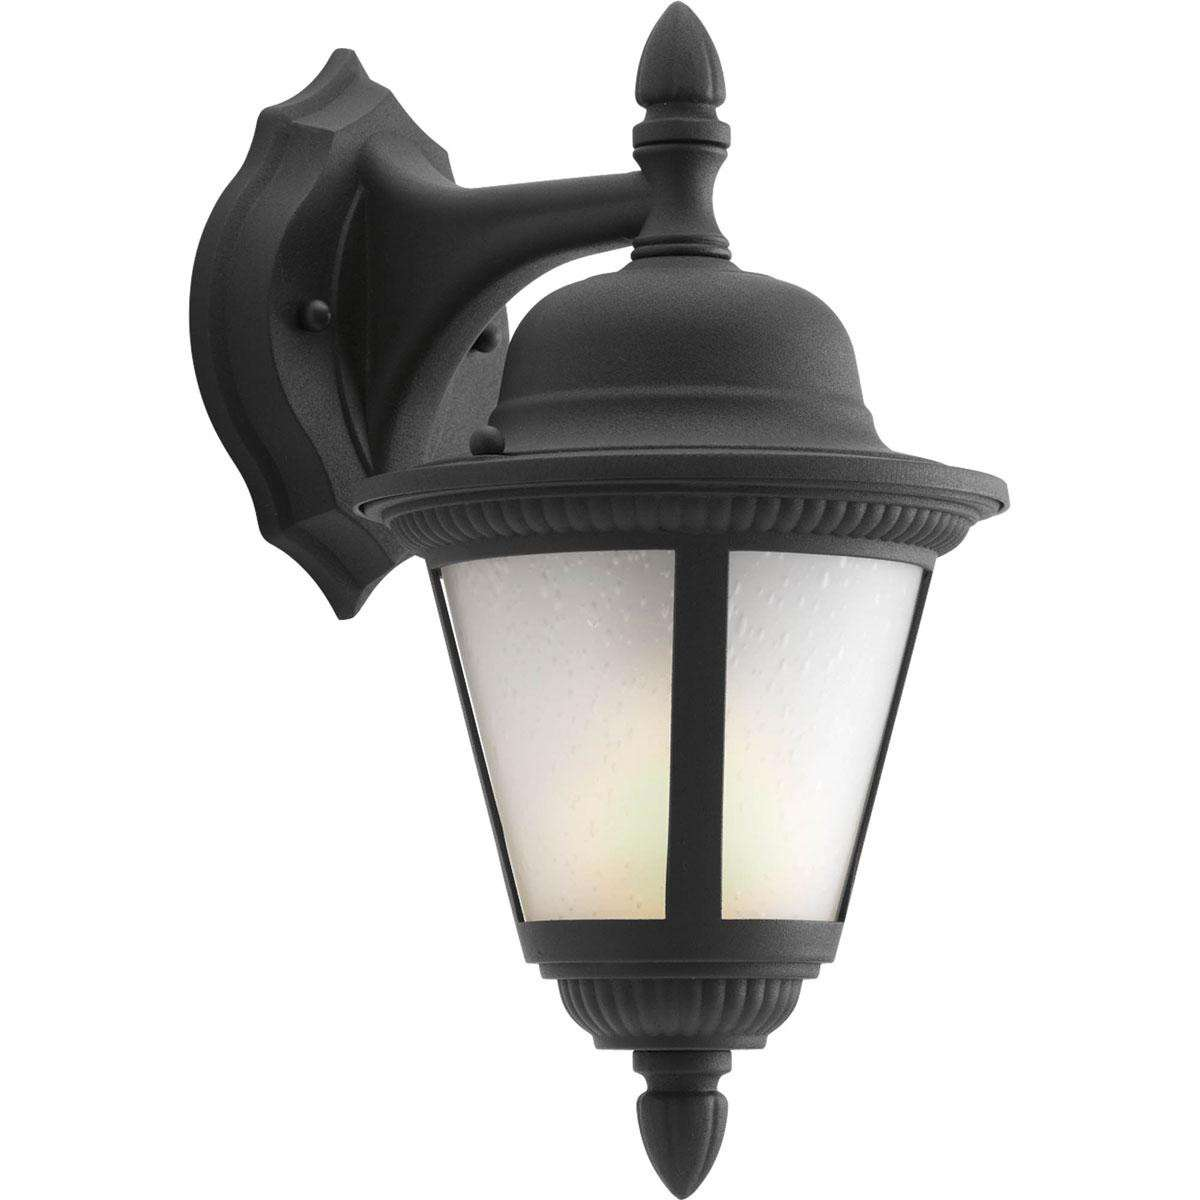 Westport Black 1-Lt. CFL wall lantern with Etched Seeded glass